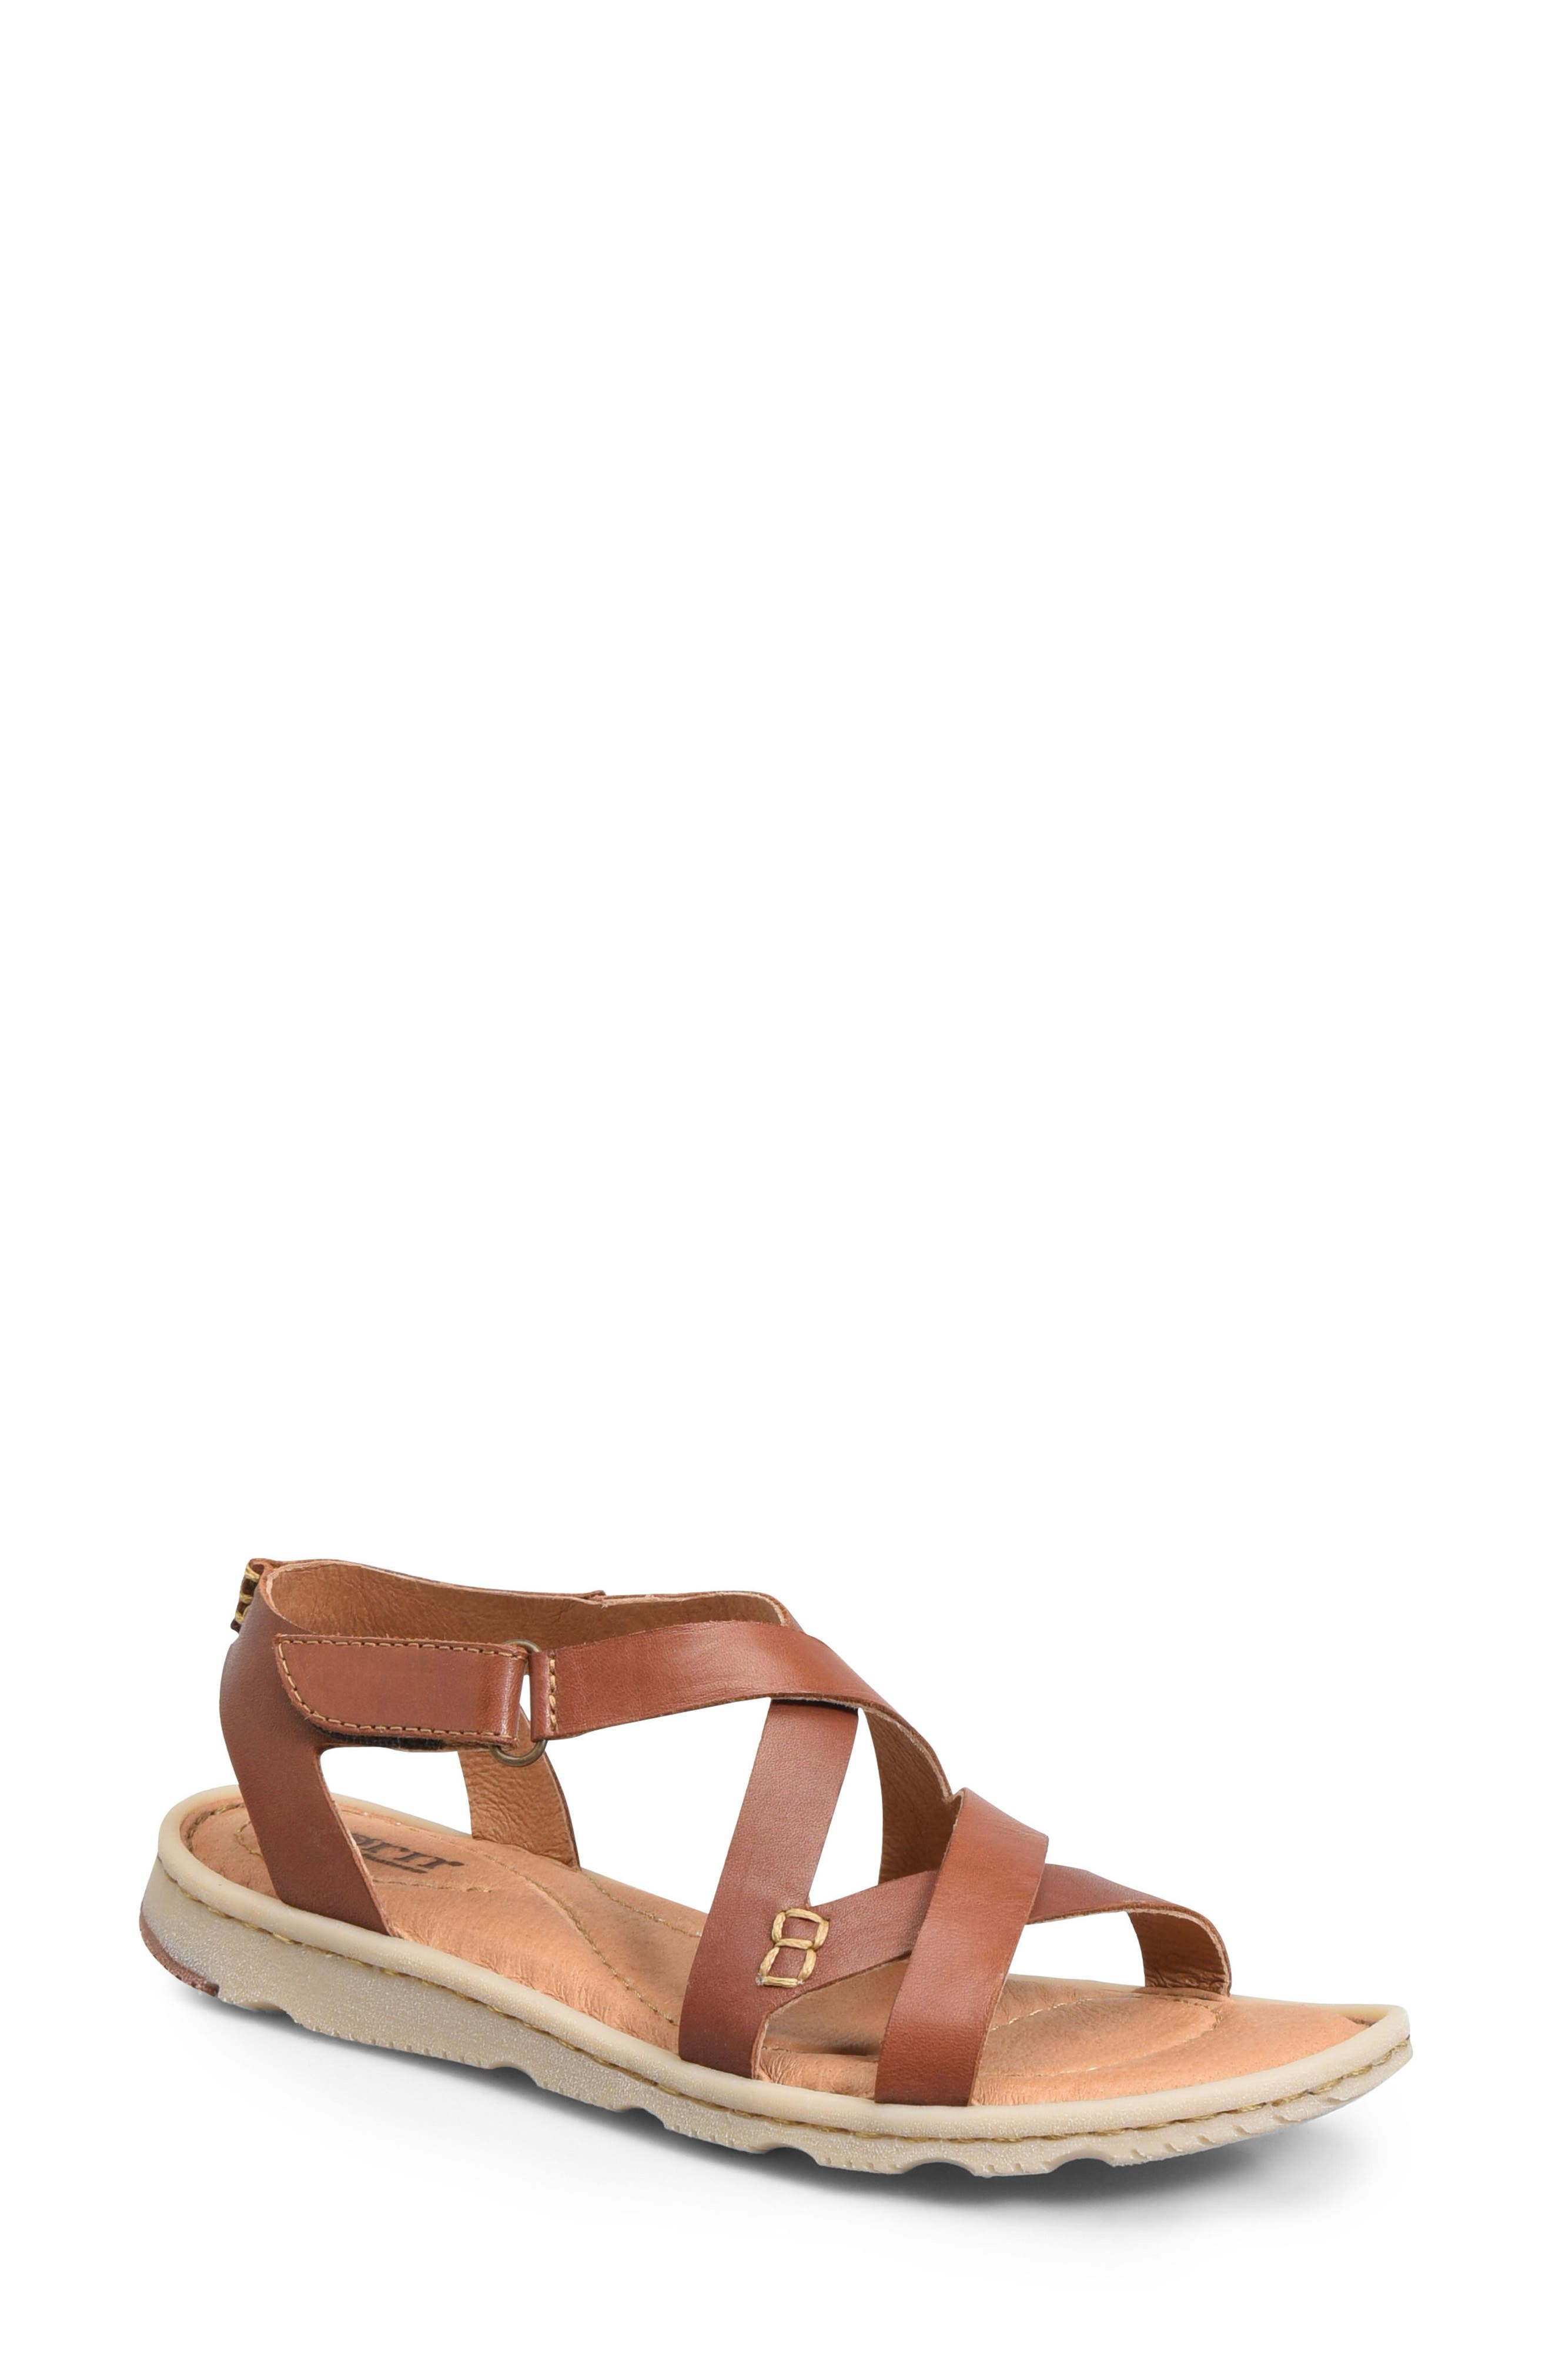 Trinidad Sandal,                             Main thumbnail 1, color,                             Brown Leather